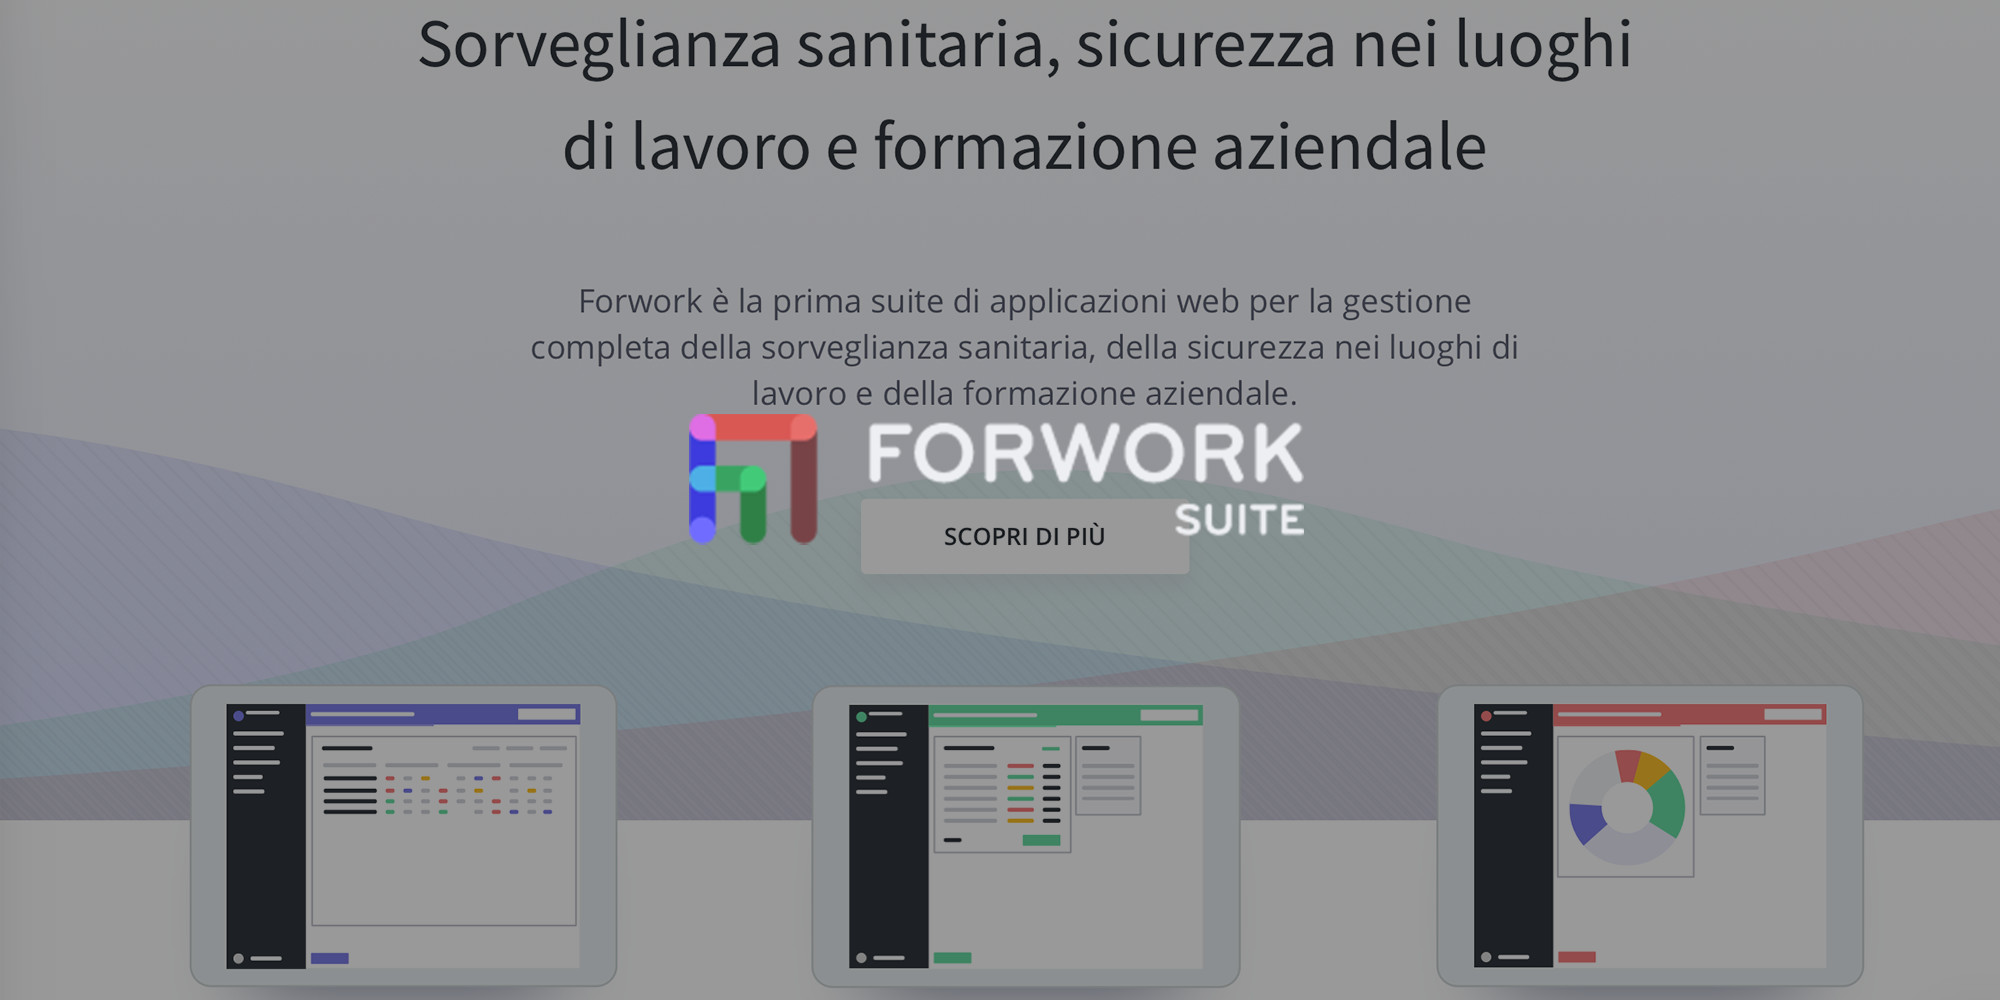 FORWORK SUITE